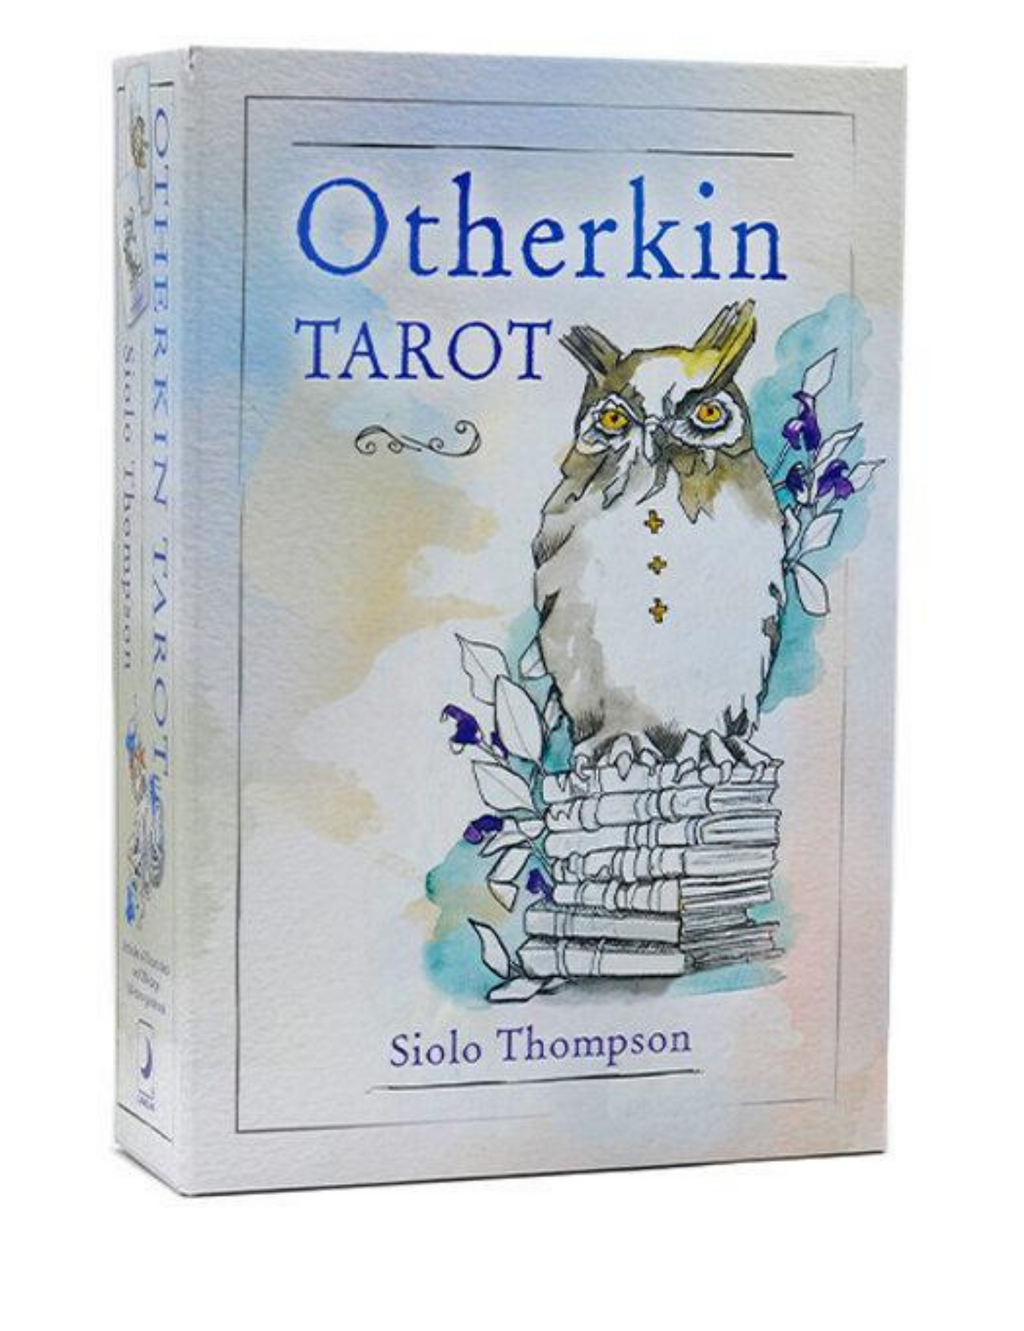 Otherkin Tarot by Siolo Thompson